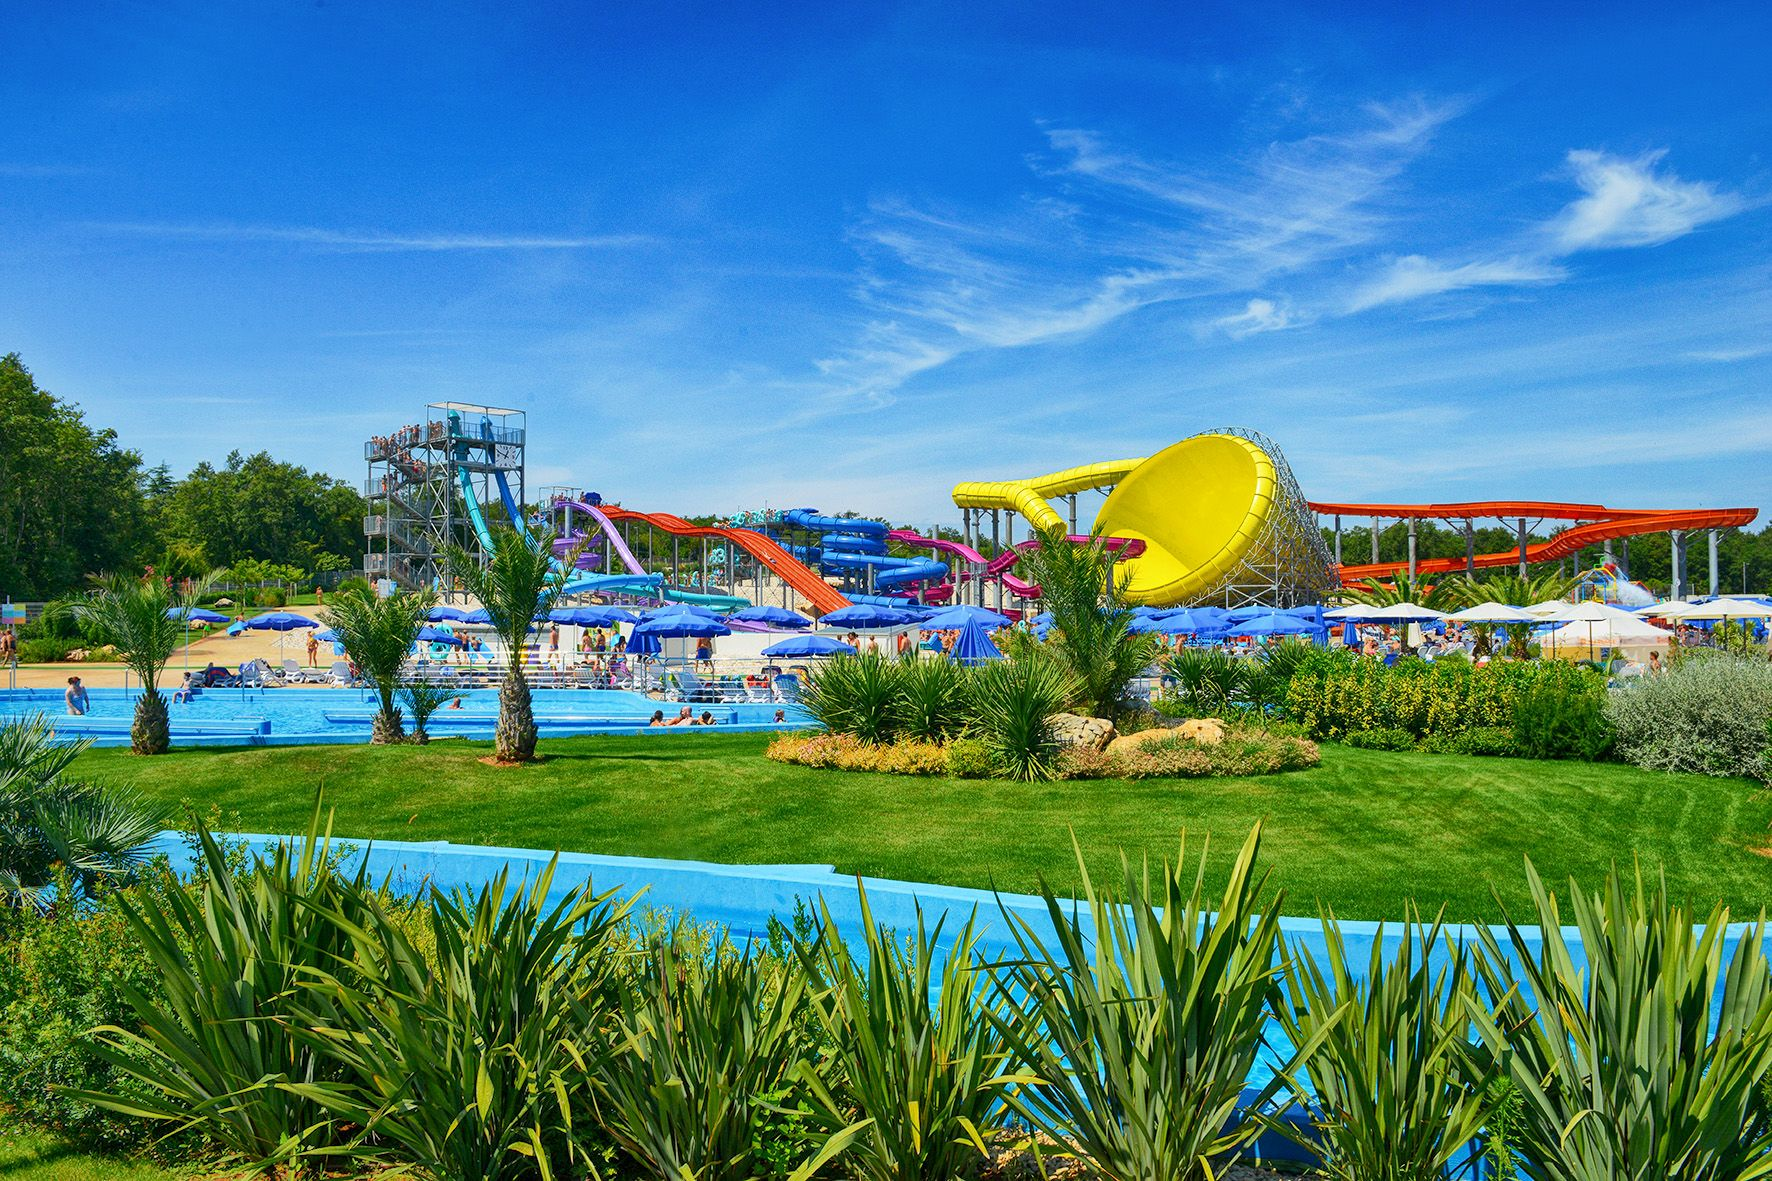 Aquapark Aquacolors Poreč – Croatia's Largest Water Park